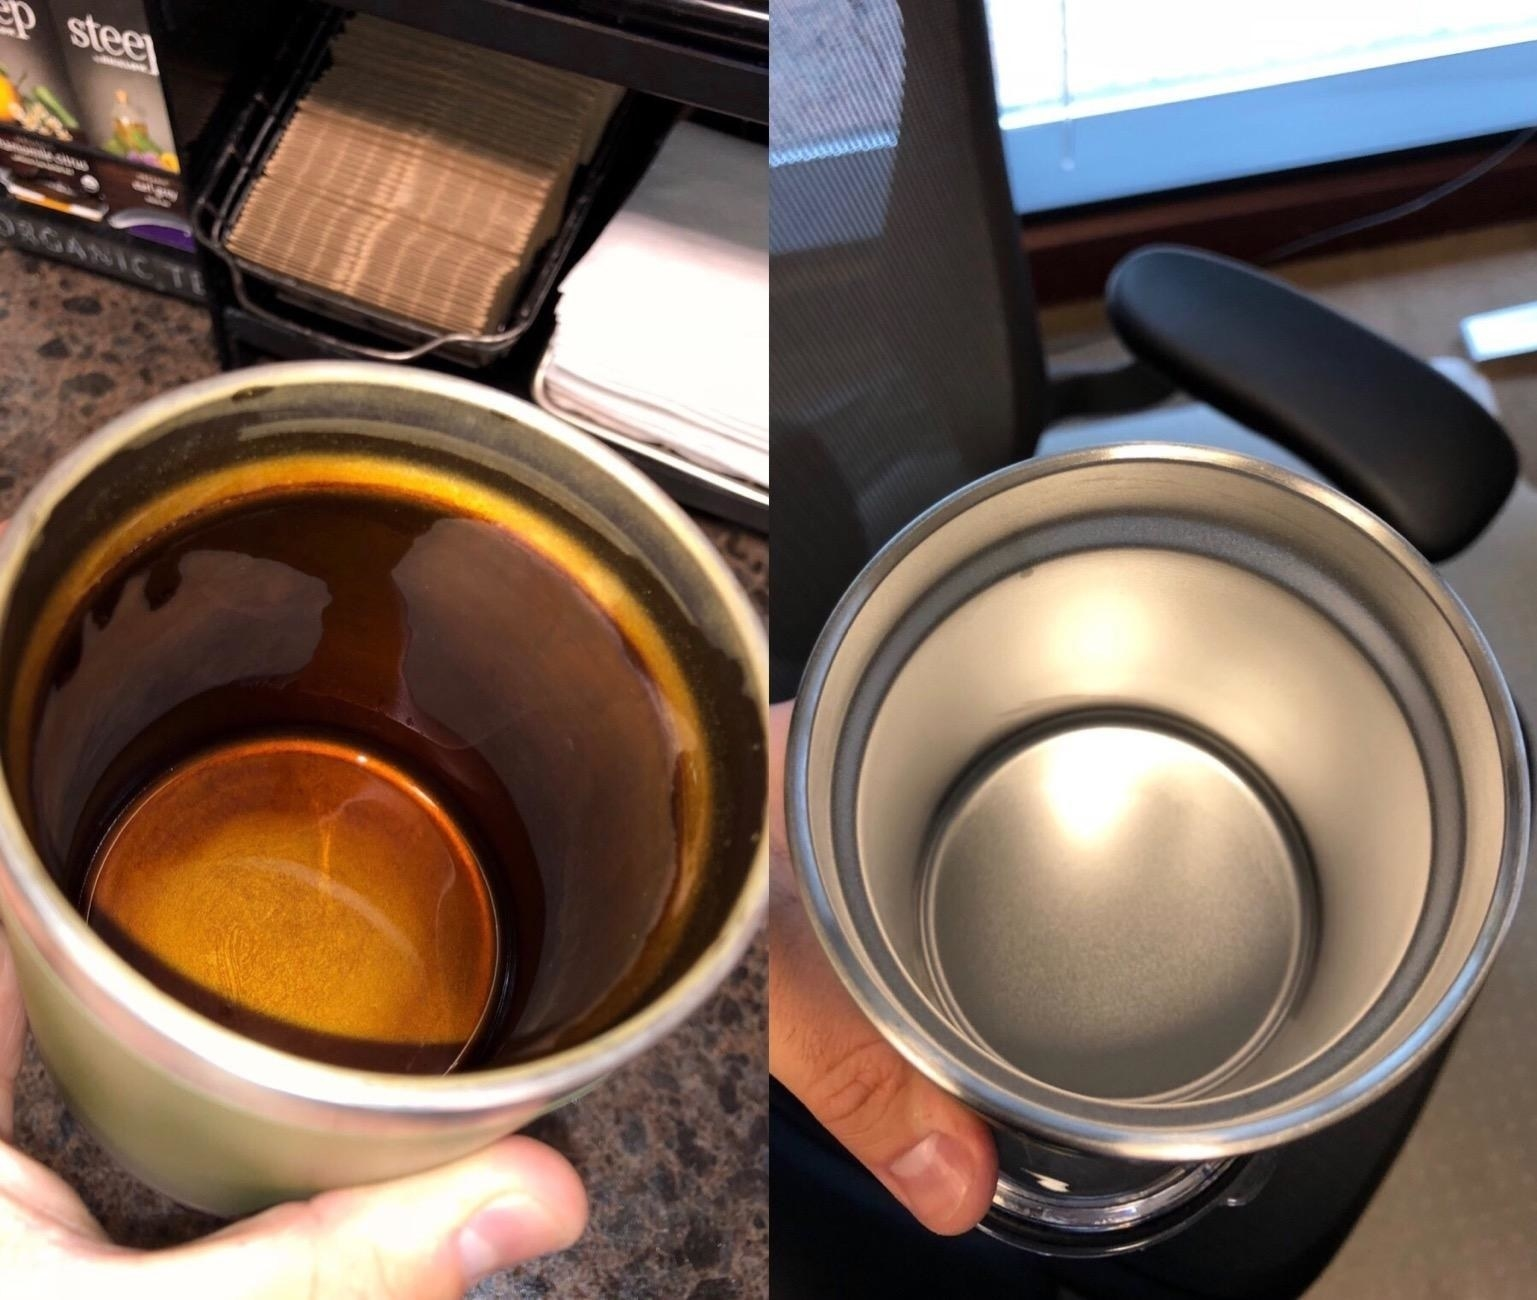 A stainless steel tumbler with baked-on coffee stains on the left, and the same cup totally clean on the right